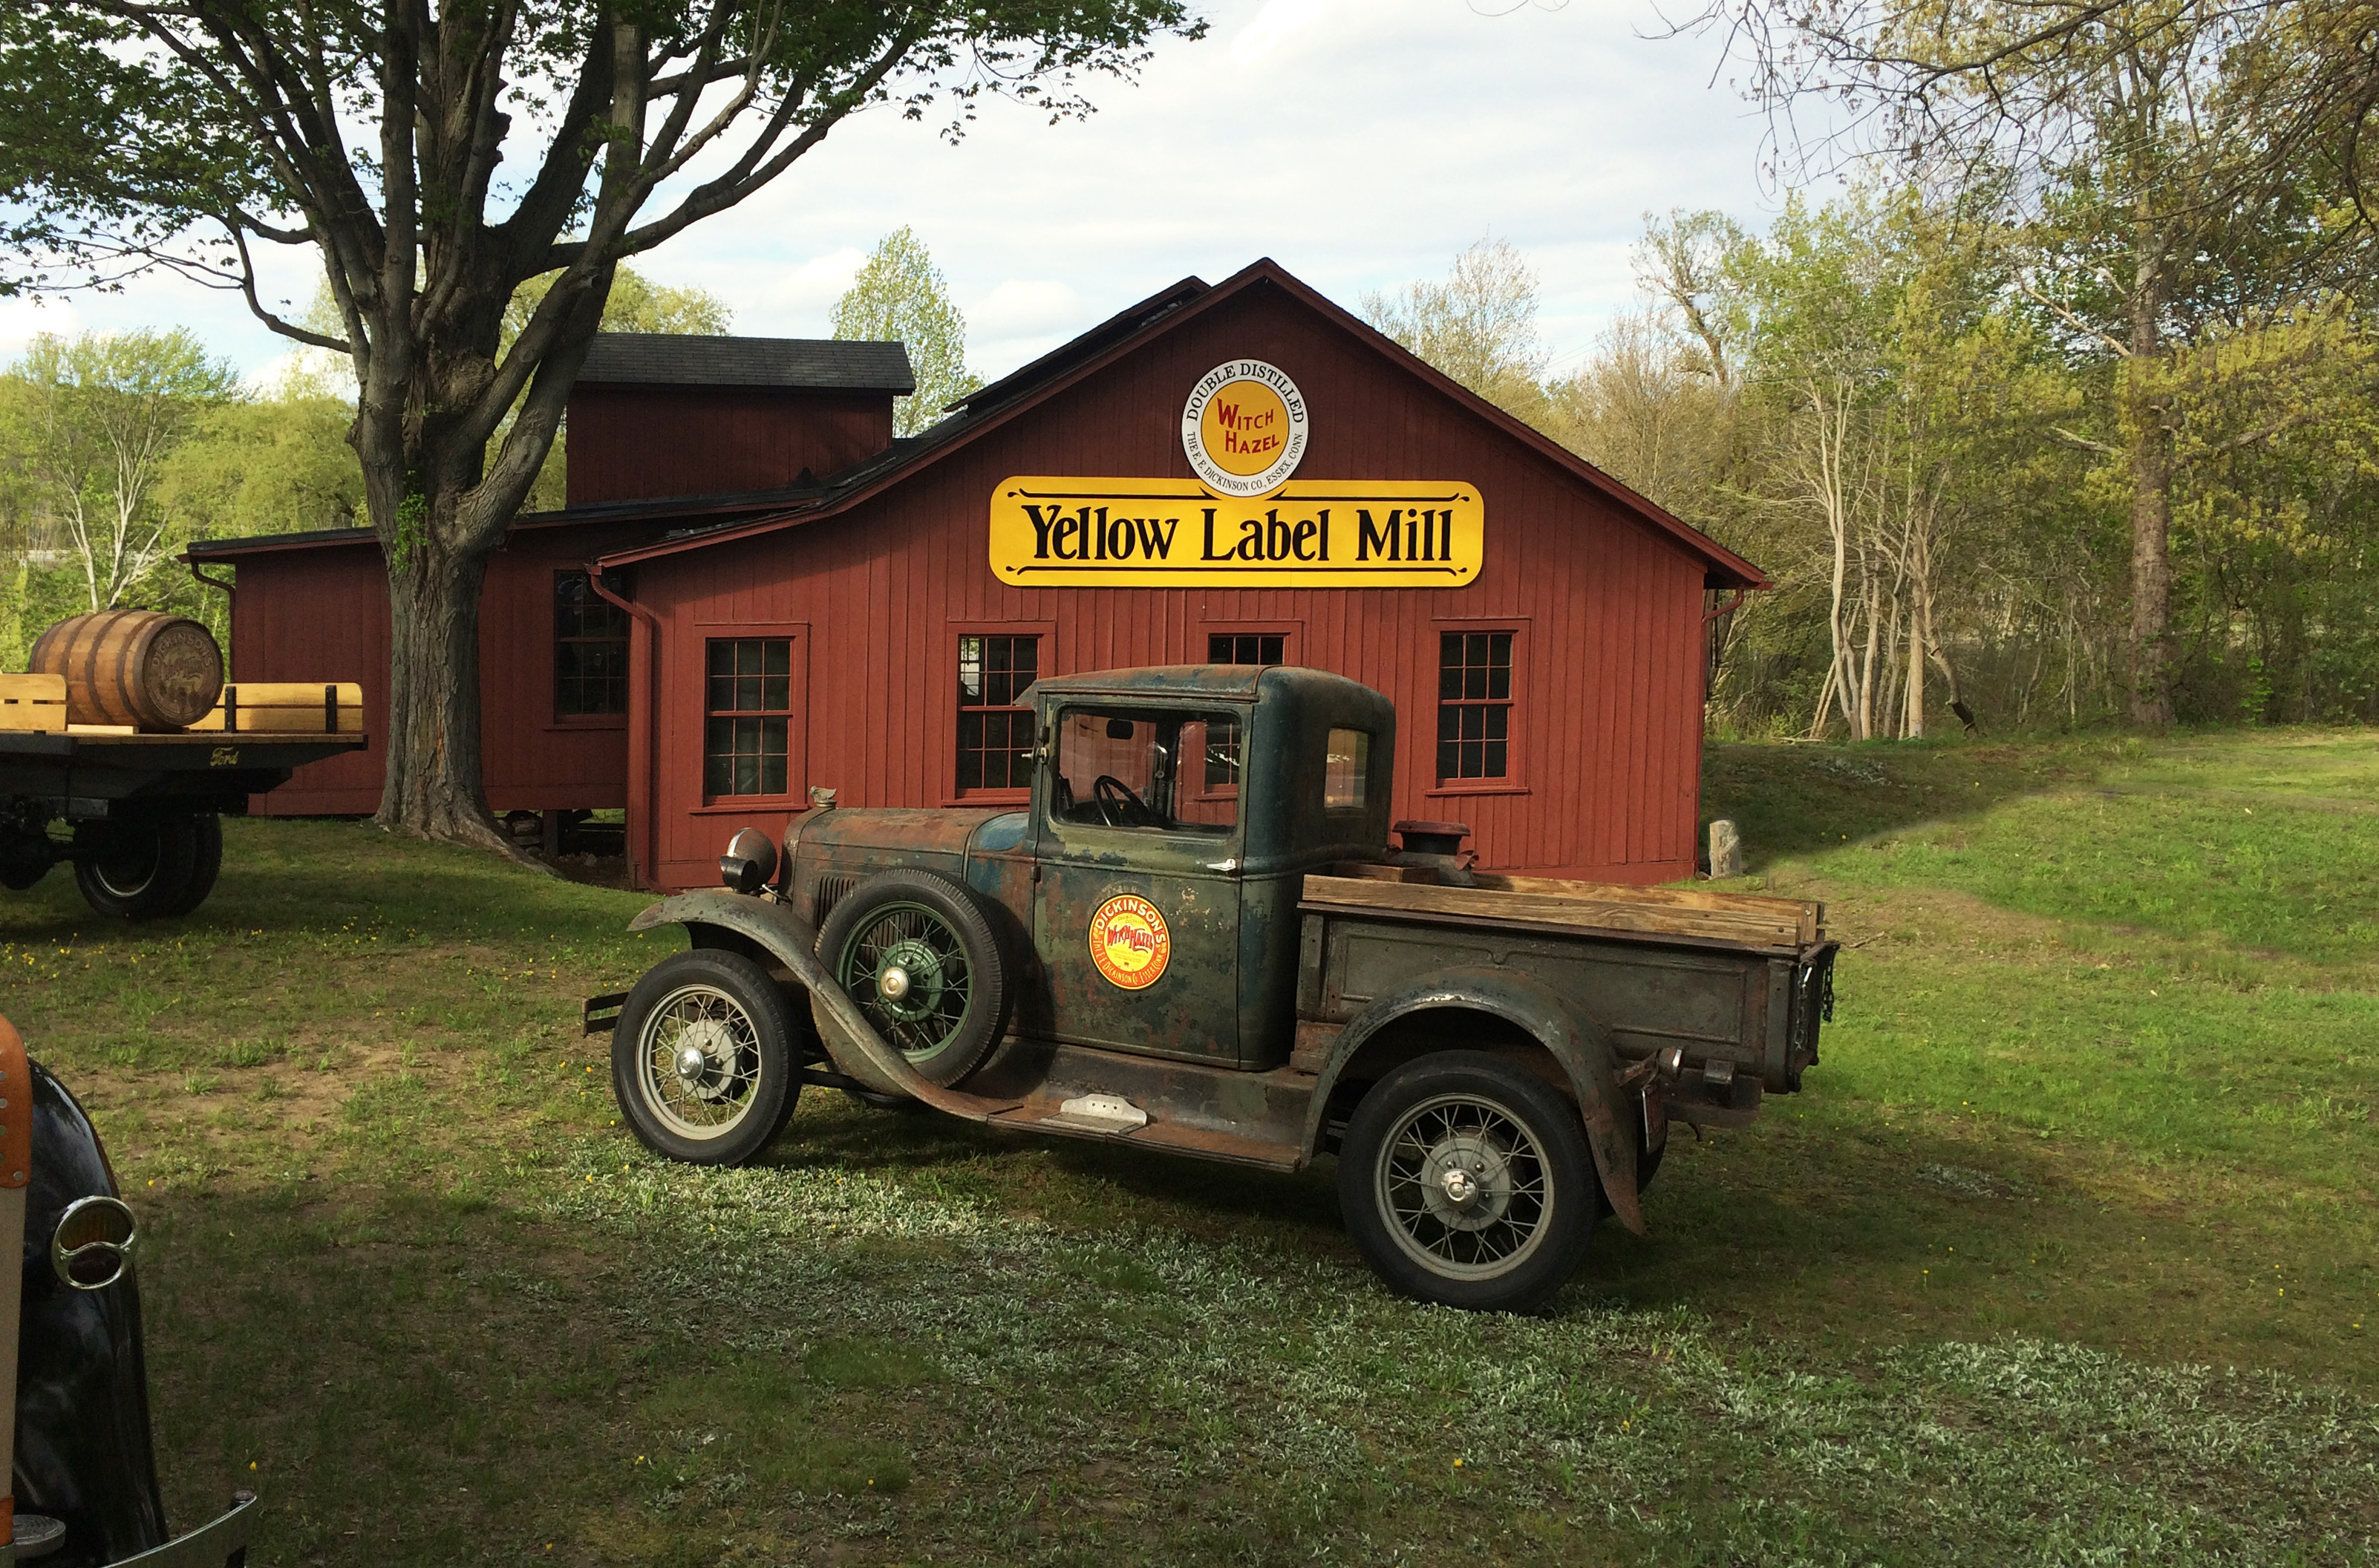 Yellow Label Mill